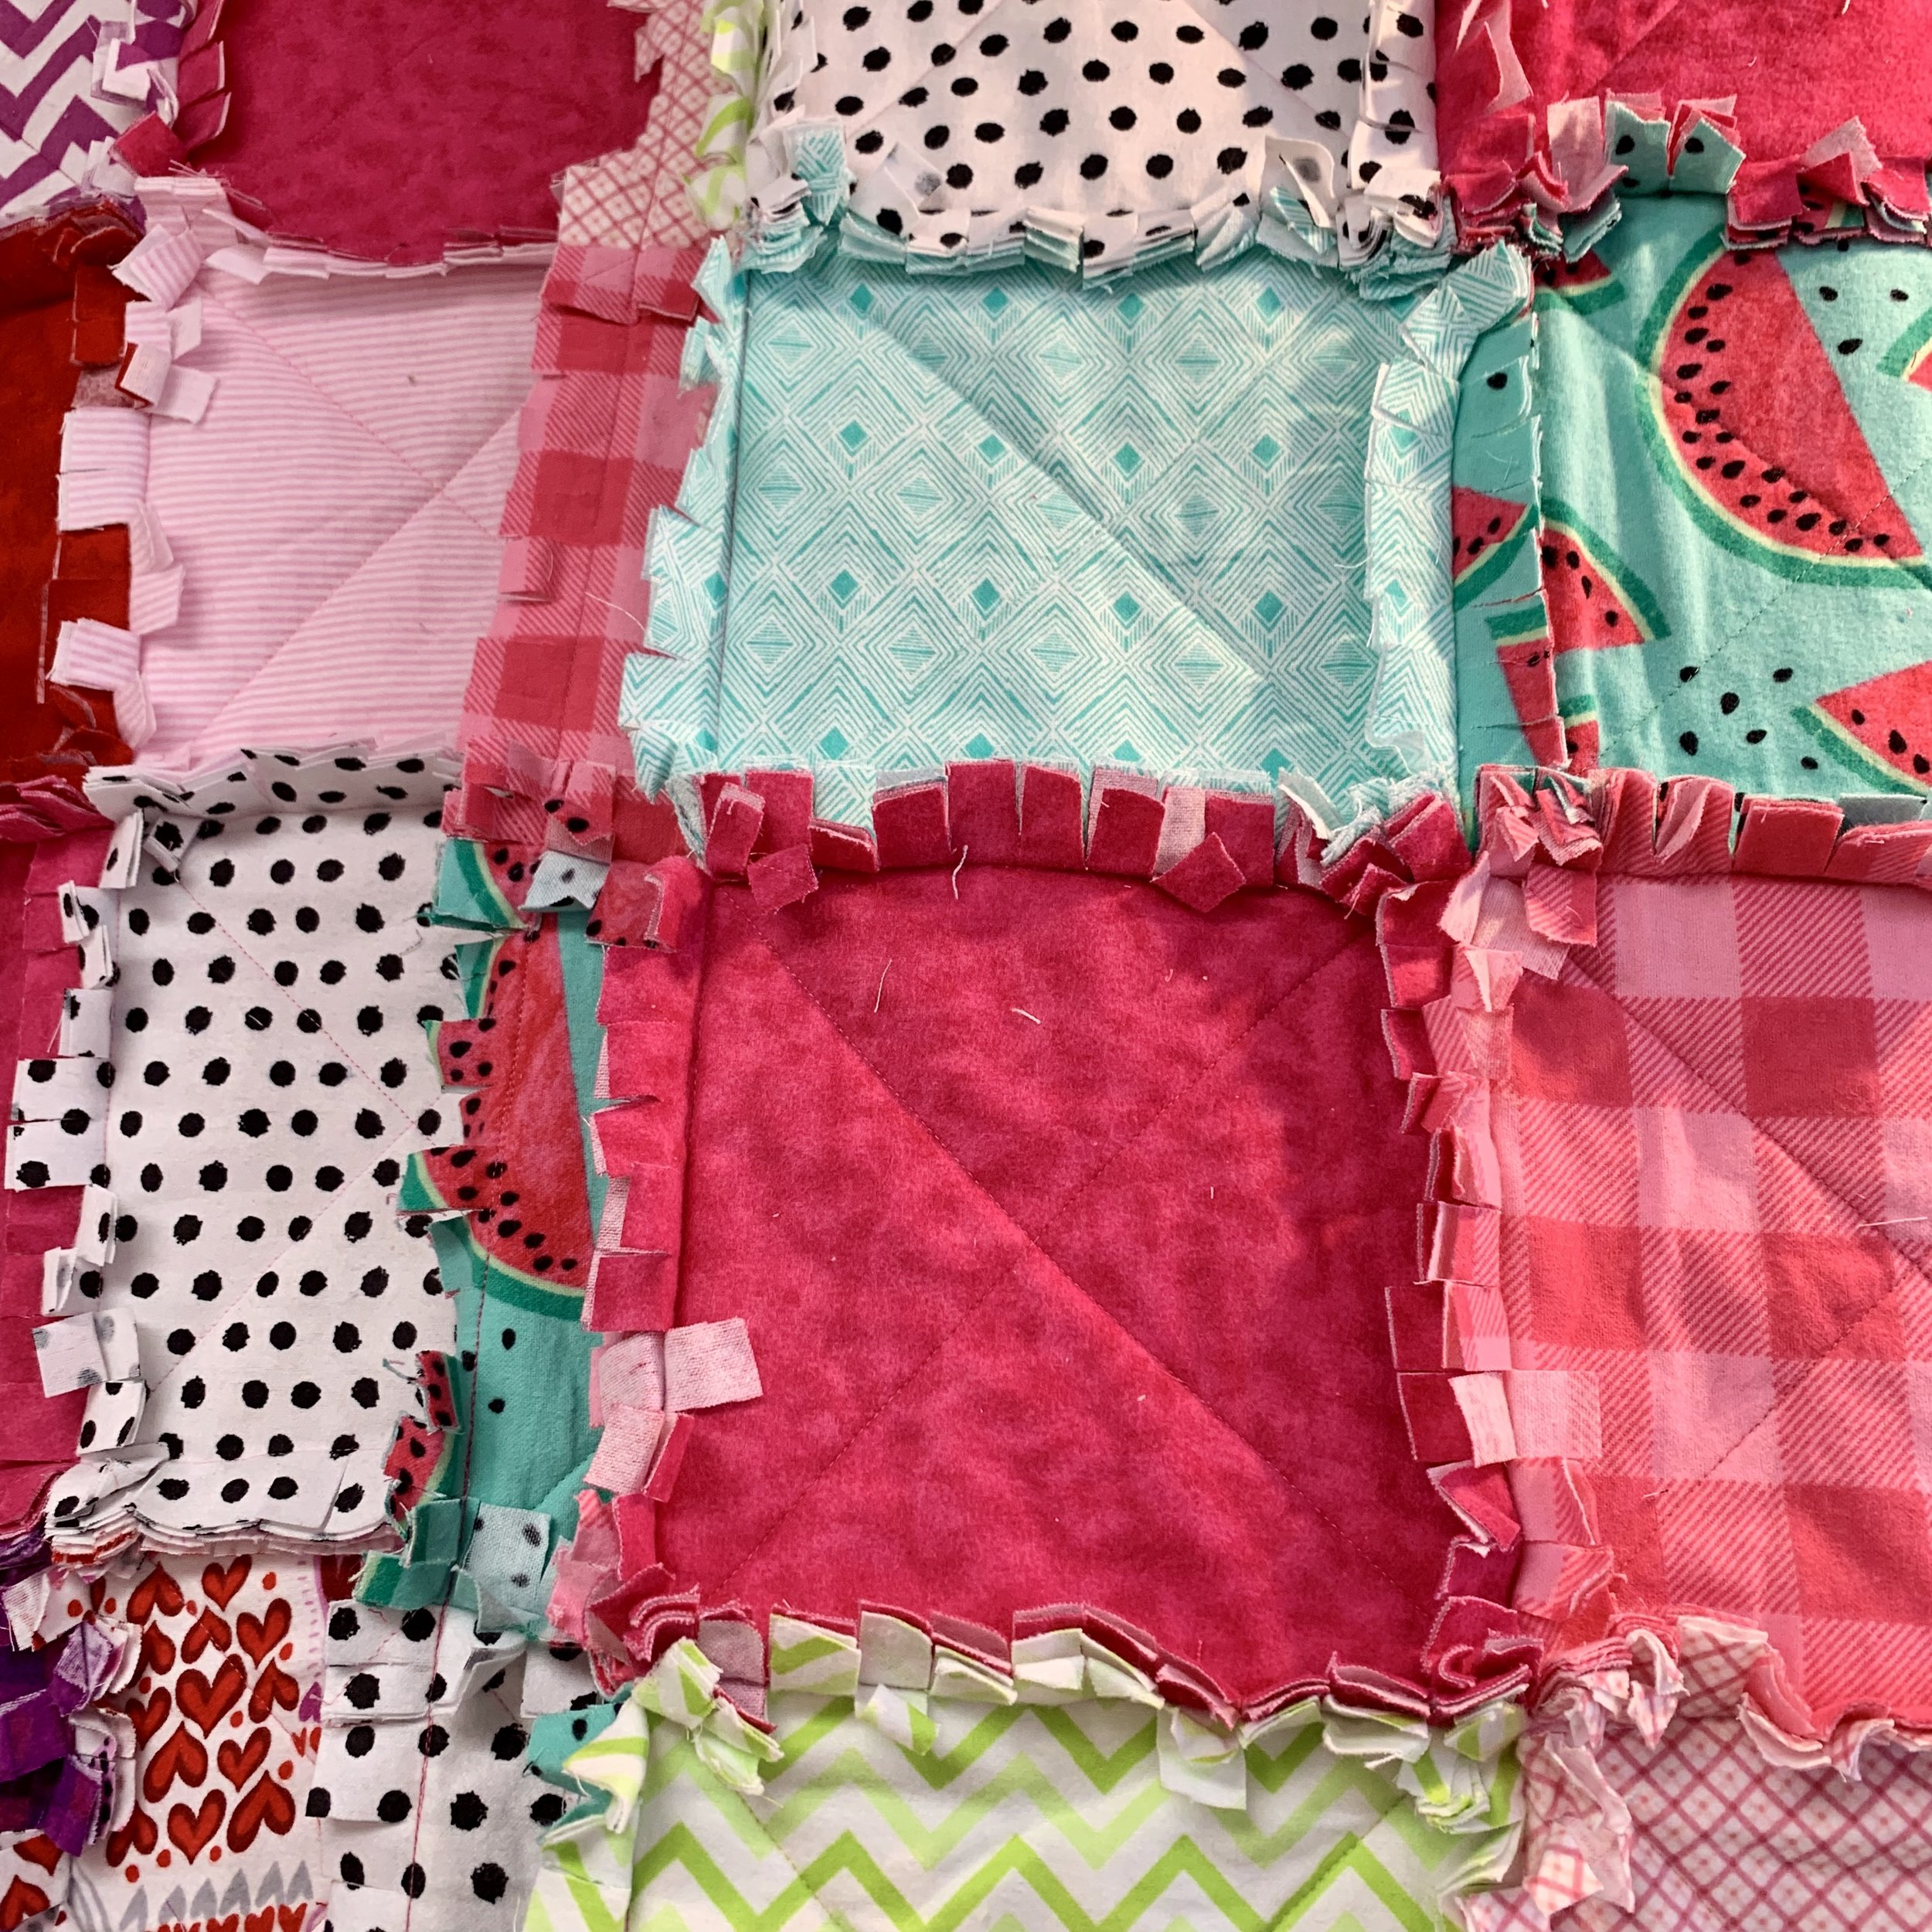 Rag Quilts - Available Wednesday Mornings 9am-12pm